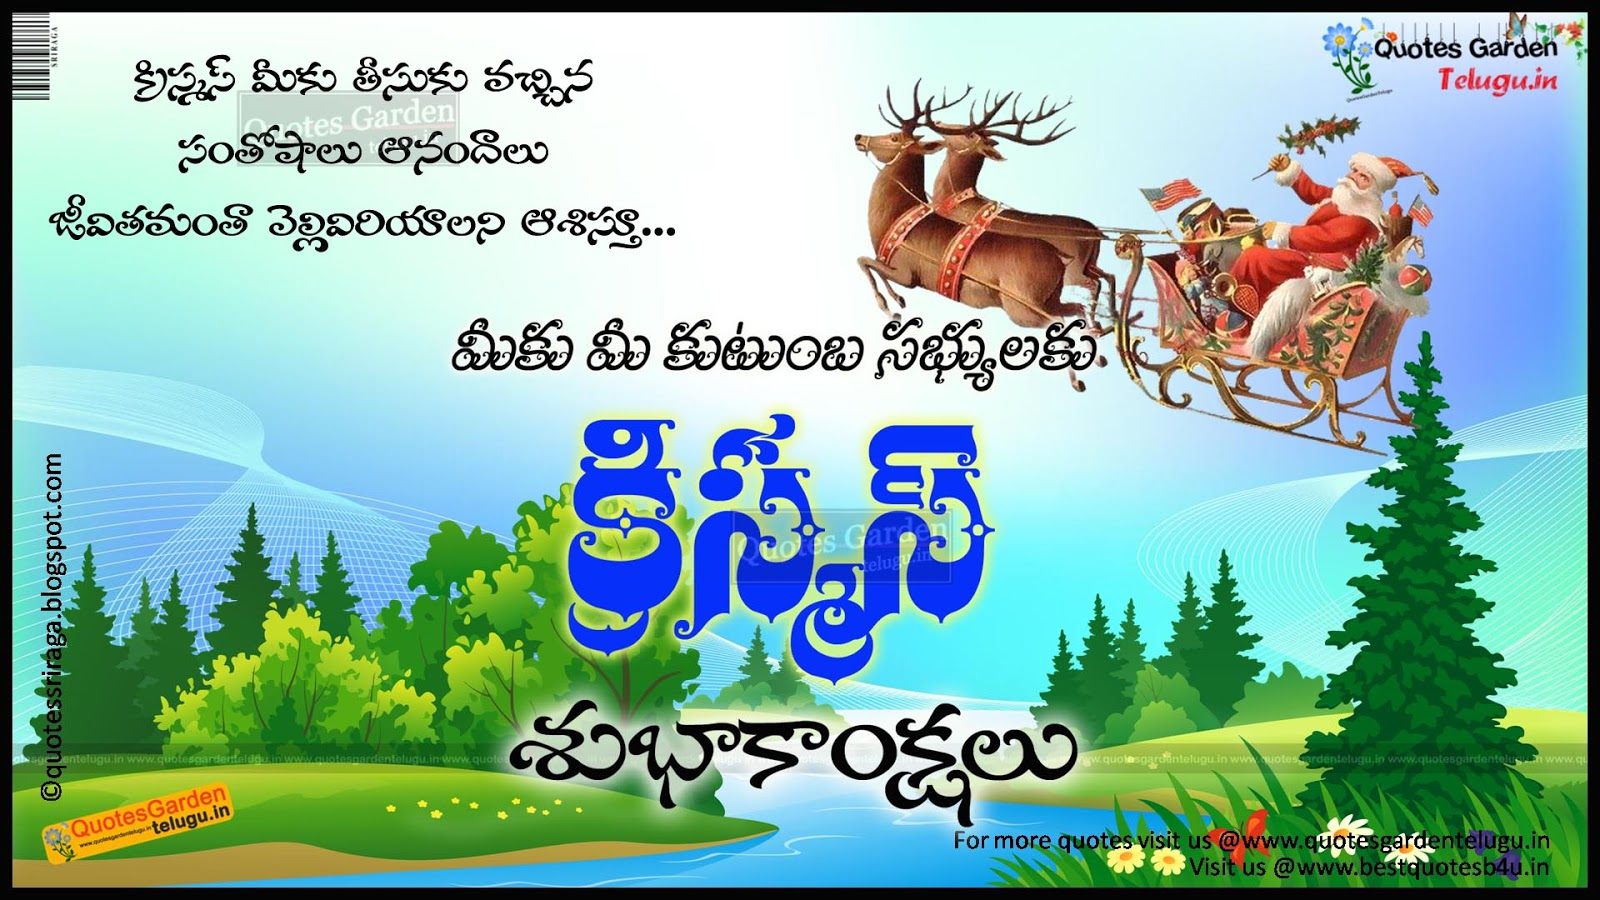 Happy Christmas Telugu Greetings sms messages 1487 | QUOTES GARDEN ...